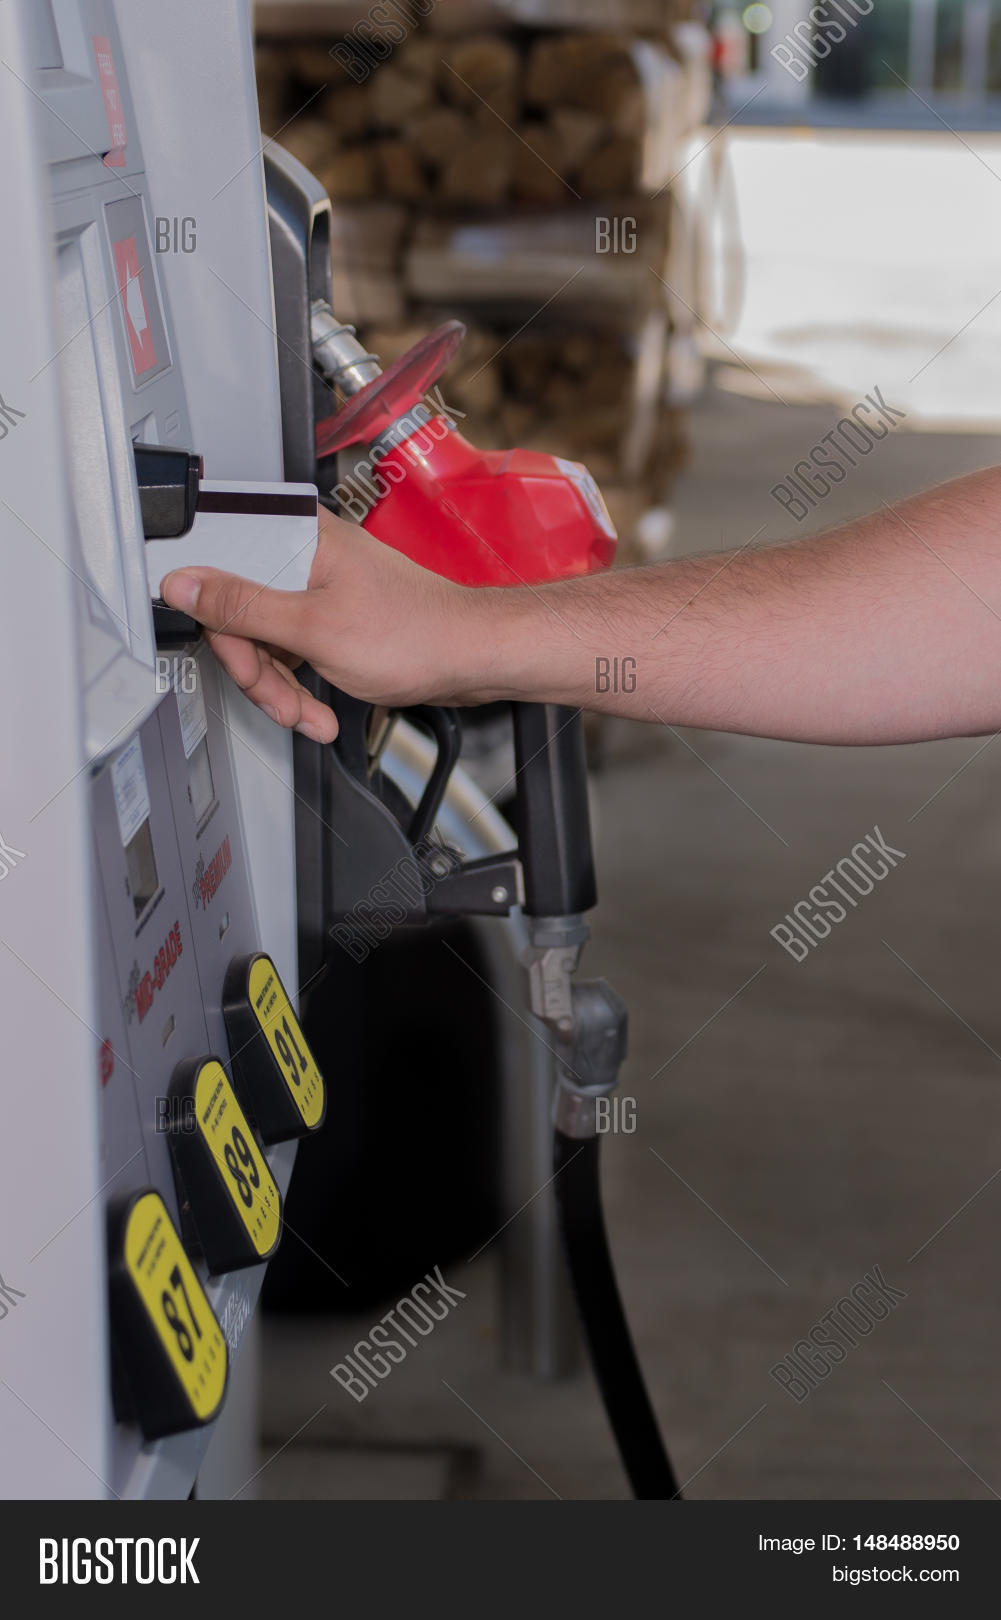 Using Credit Card Gas Image & Photo (Free Trial) | Bigstock